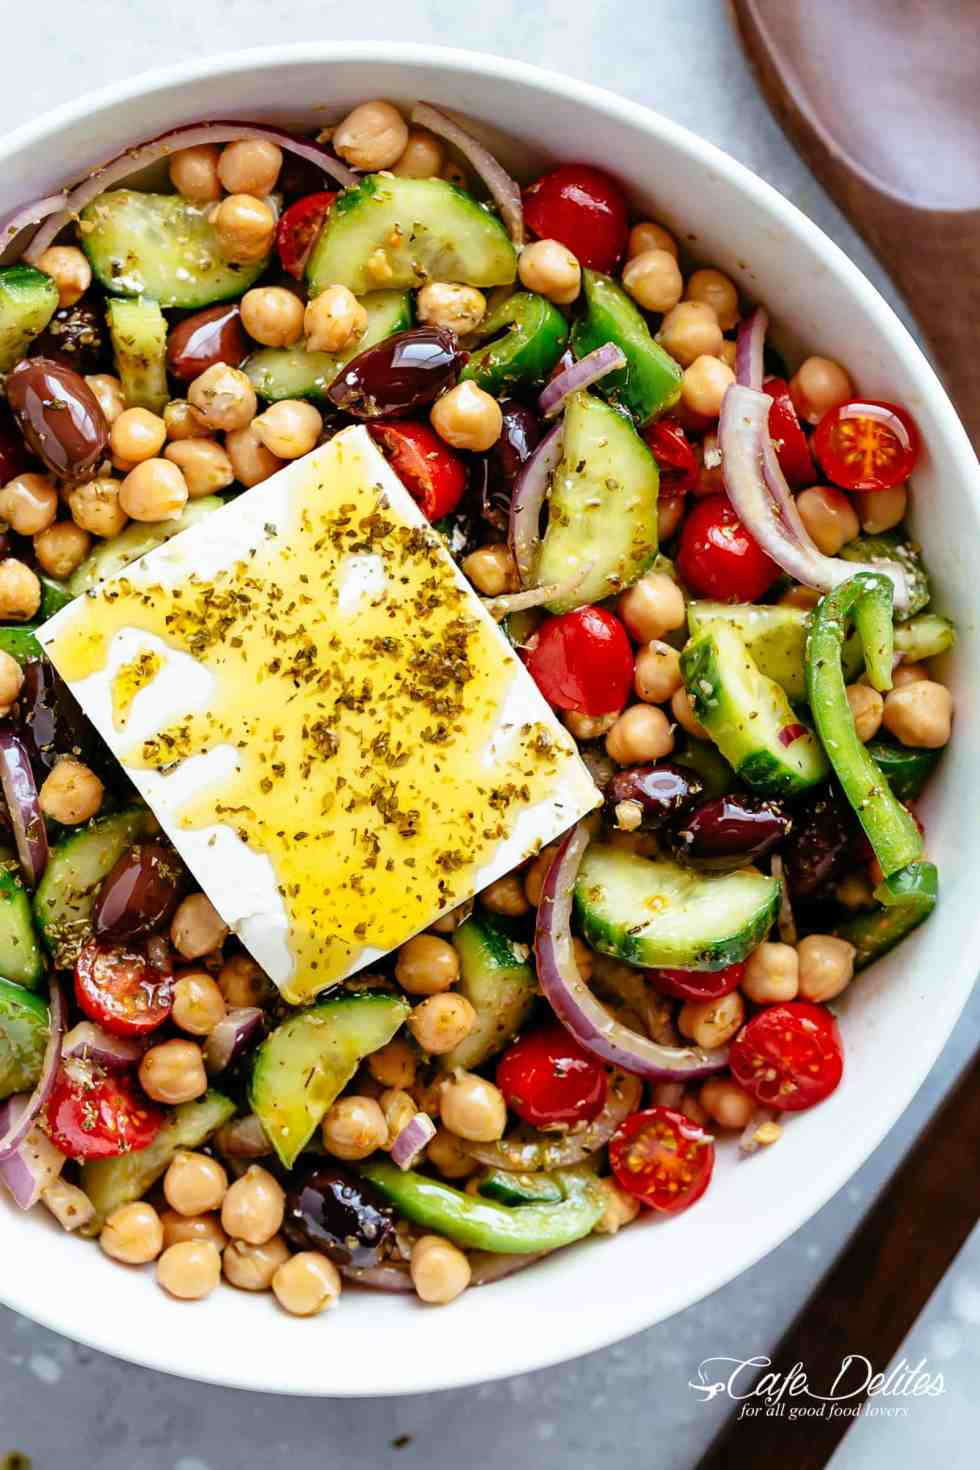 GreekChickpeaSalad with an authentic greek salad dressing is a favourite salad to serve as a main OR as a side! Healthy and filling!   cafedelites.com